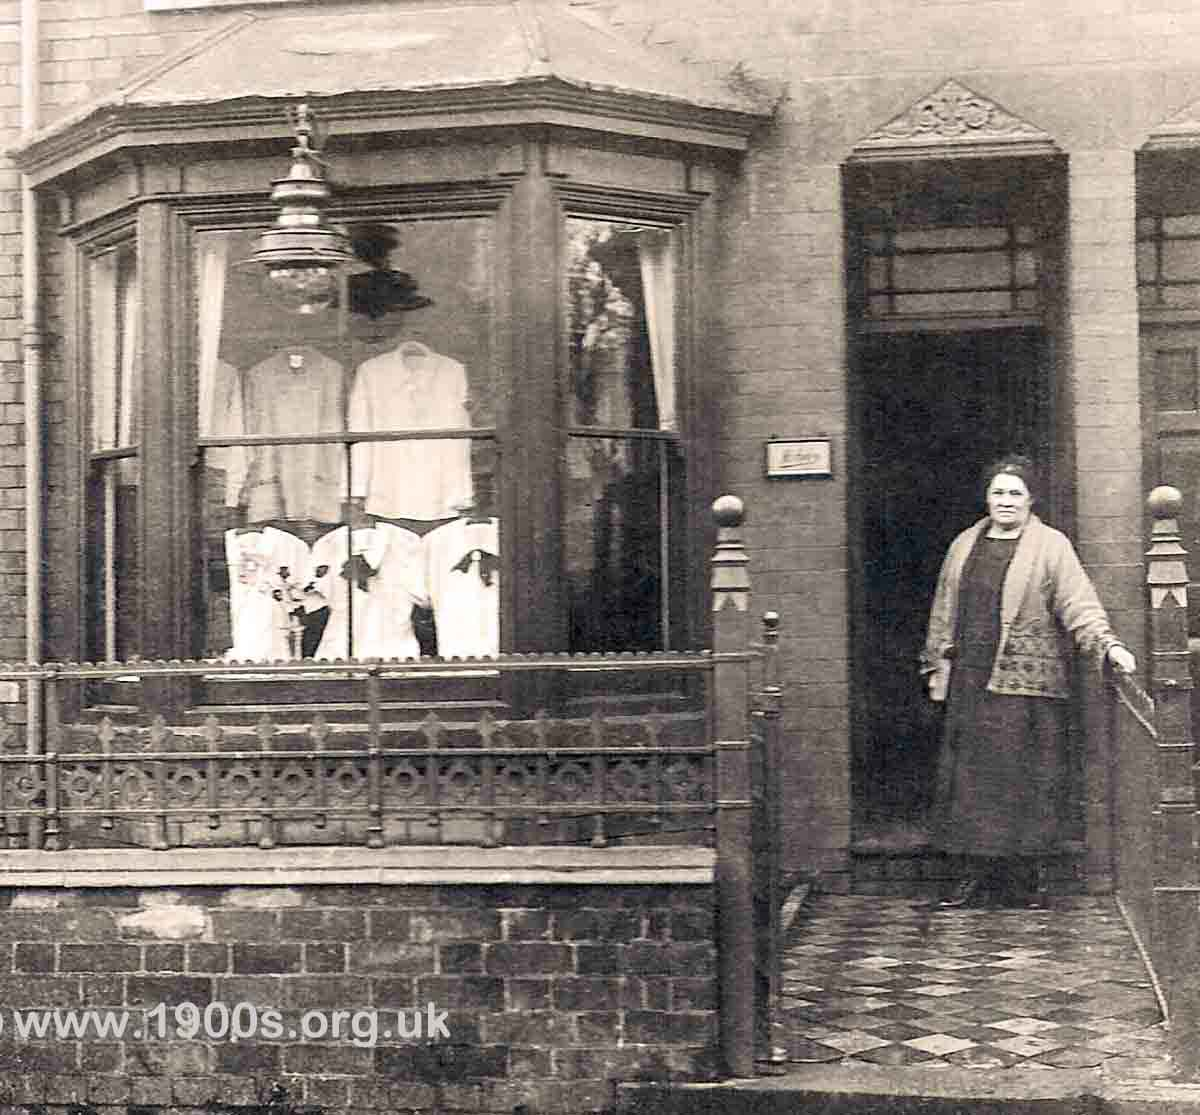 Outside of a 1925 fancy draper/haberdashery shop in the front room of a Victorian/Edwardian terraced house showing details of the tiled garden path, wrought iron railings, gas lamp, sash windows